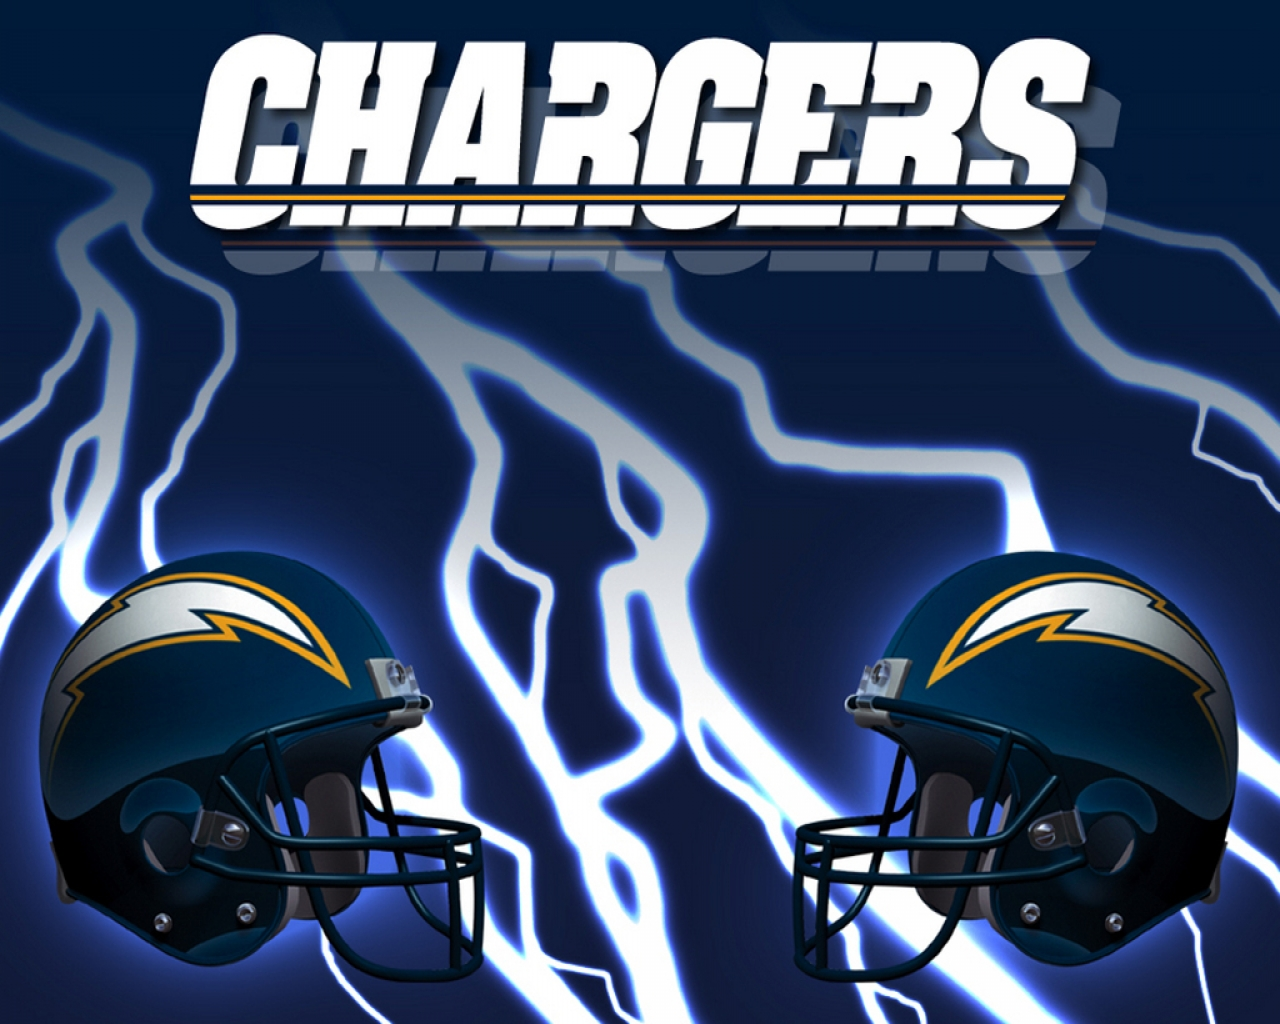 San Diego Chargers Double Helmet 1280 1024 Digital Citizen